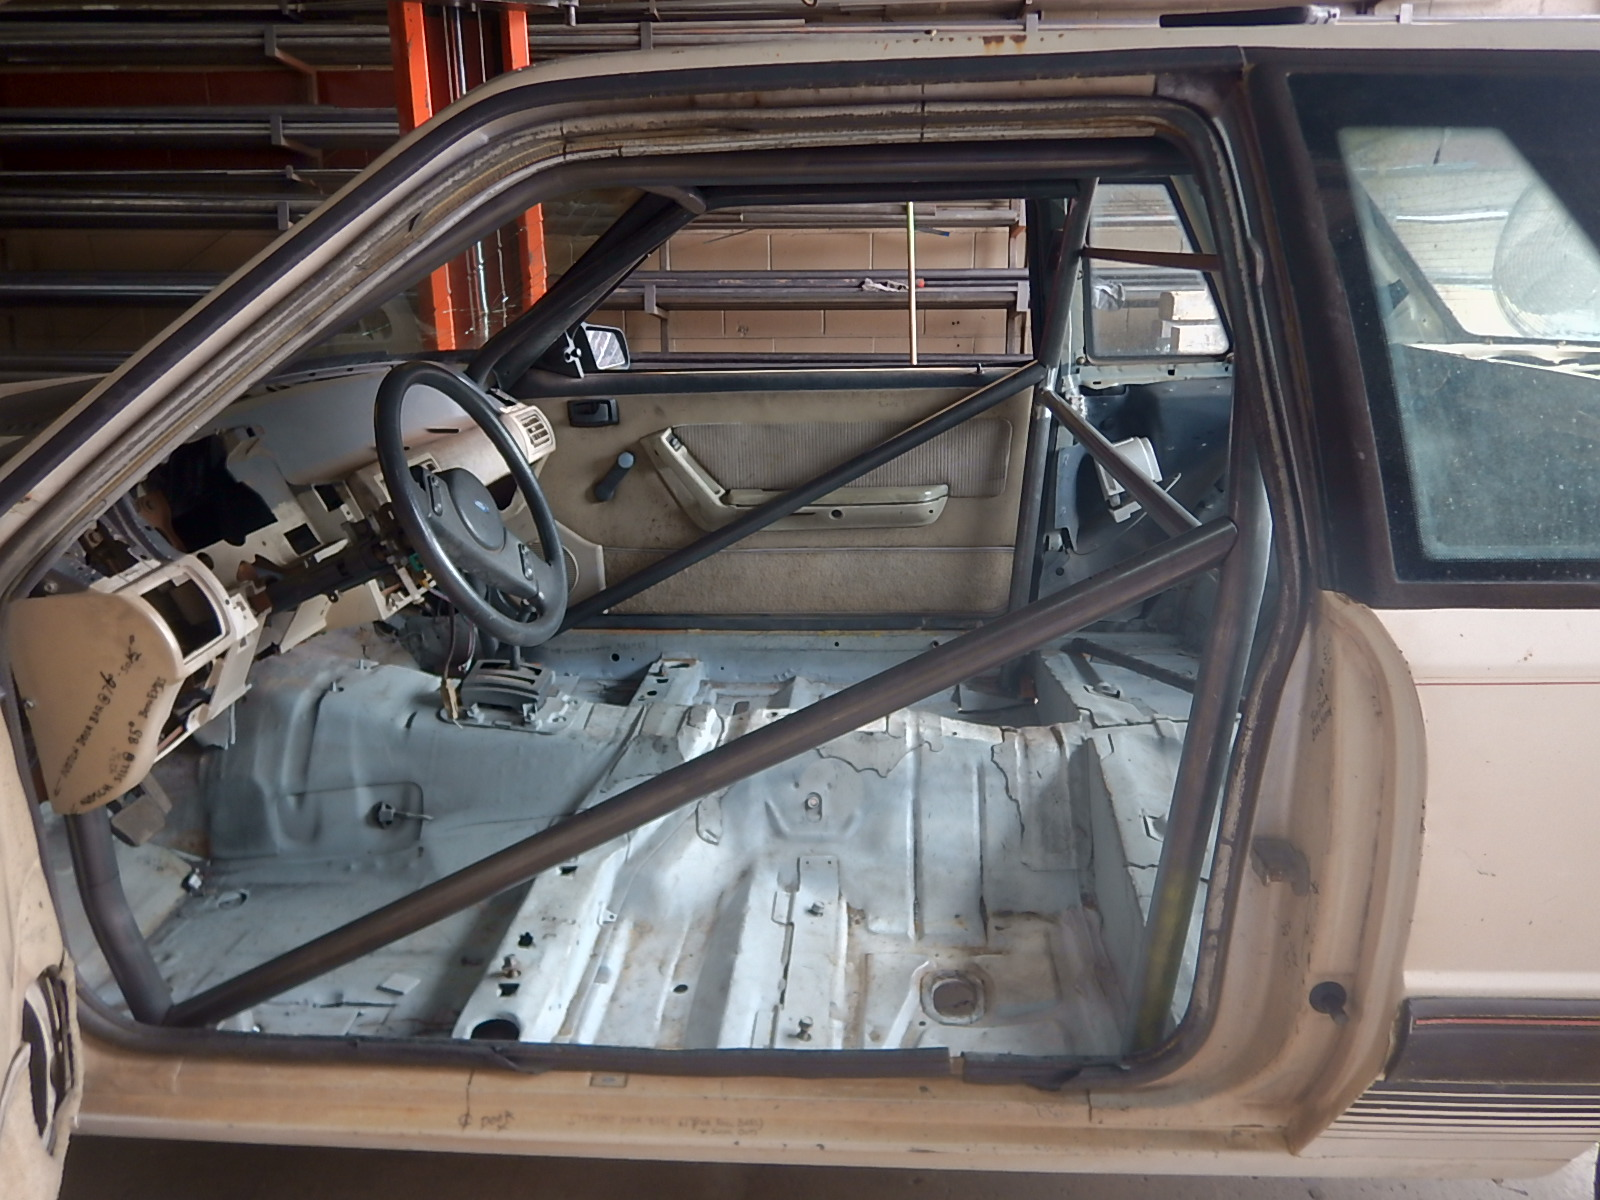 Picture of: New Fox Sn95 Exact Fit 8pt Roll Cage Wild Rides